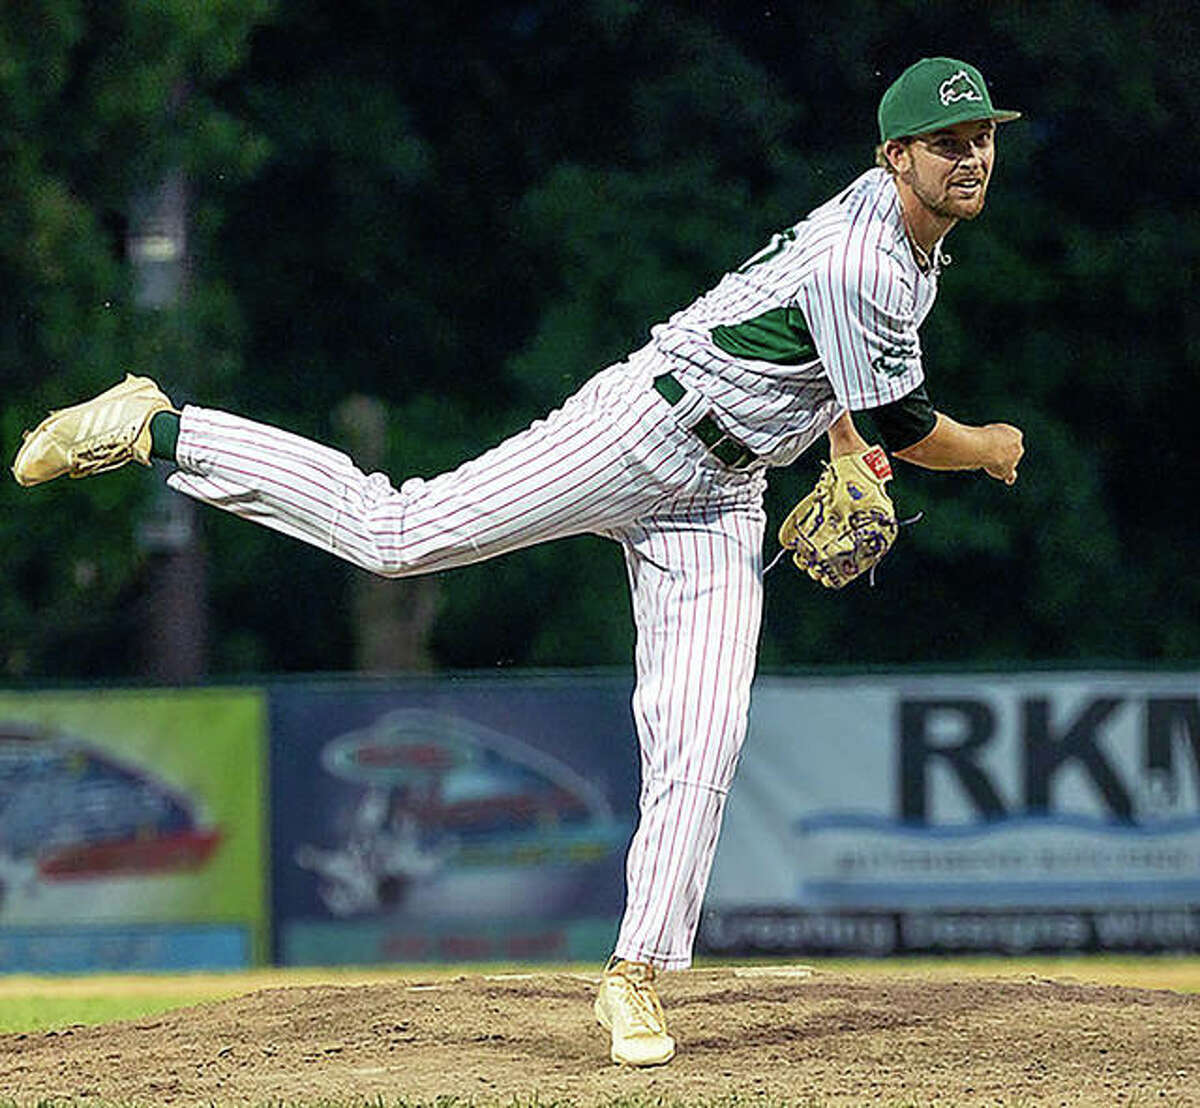 River Dragon pitcher Bryce Einstein picked up a save in Wednesday night's 4-2 Alton victory over REX Baseball in Terre Haute, Ind.